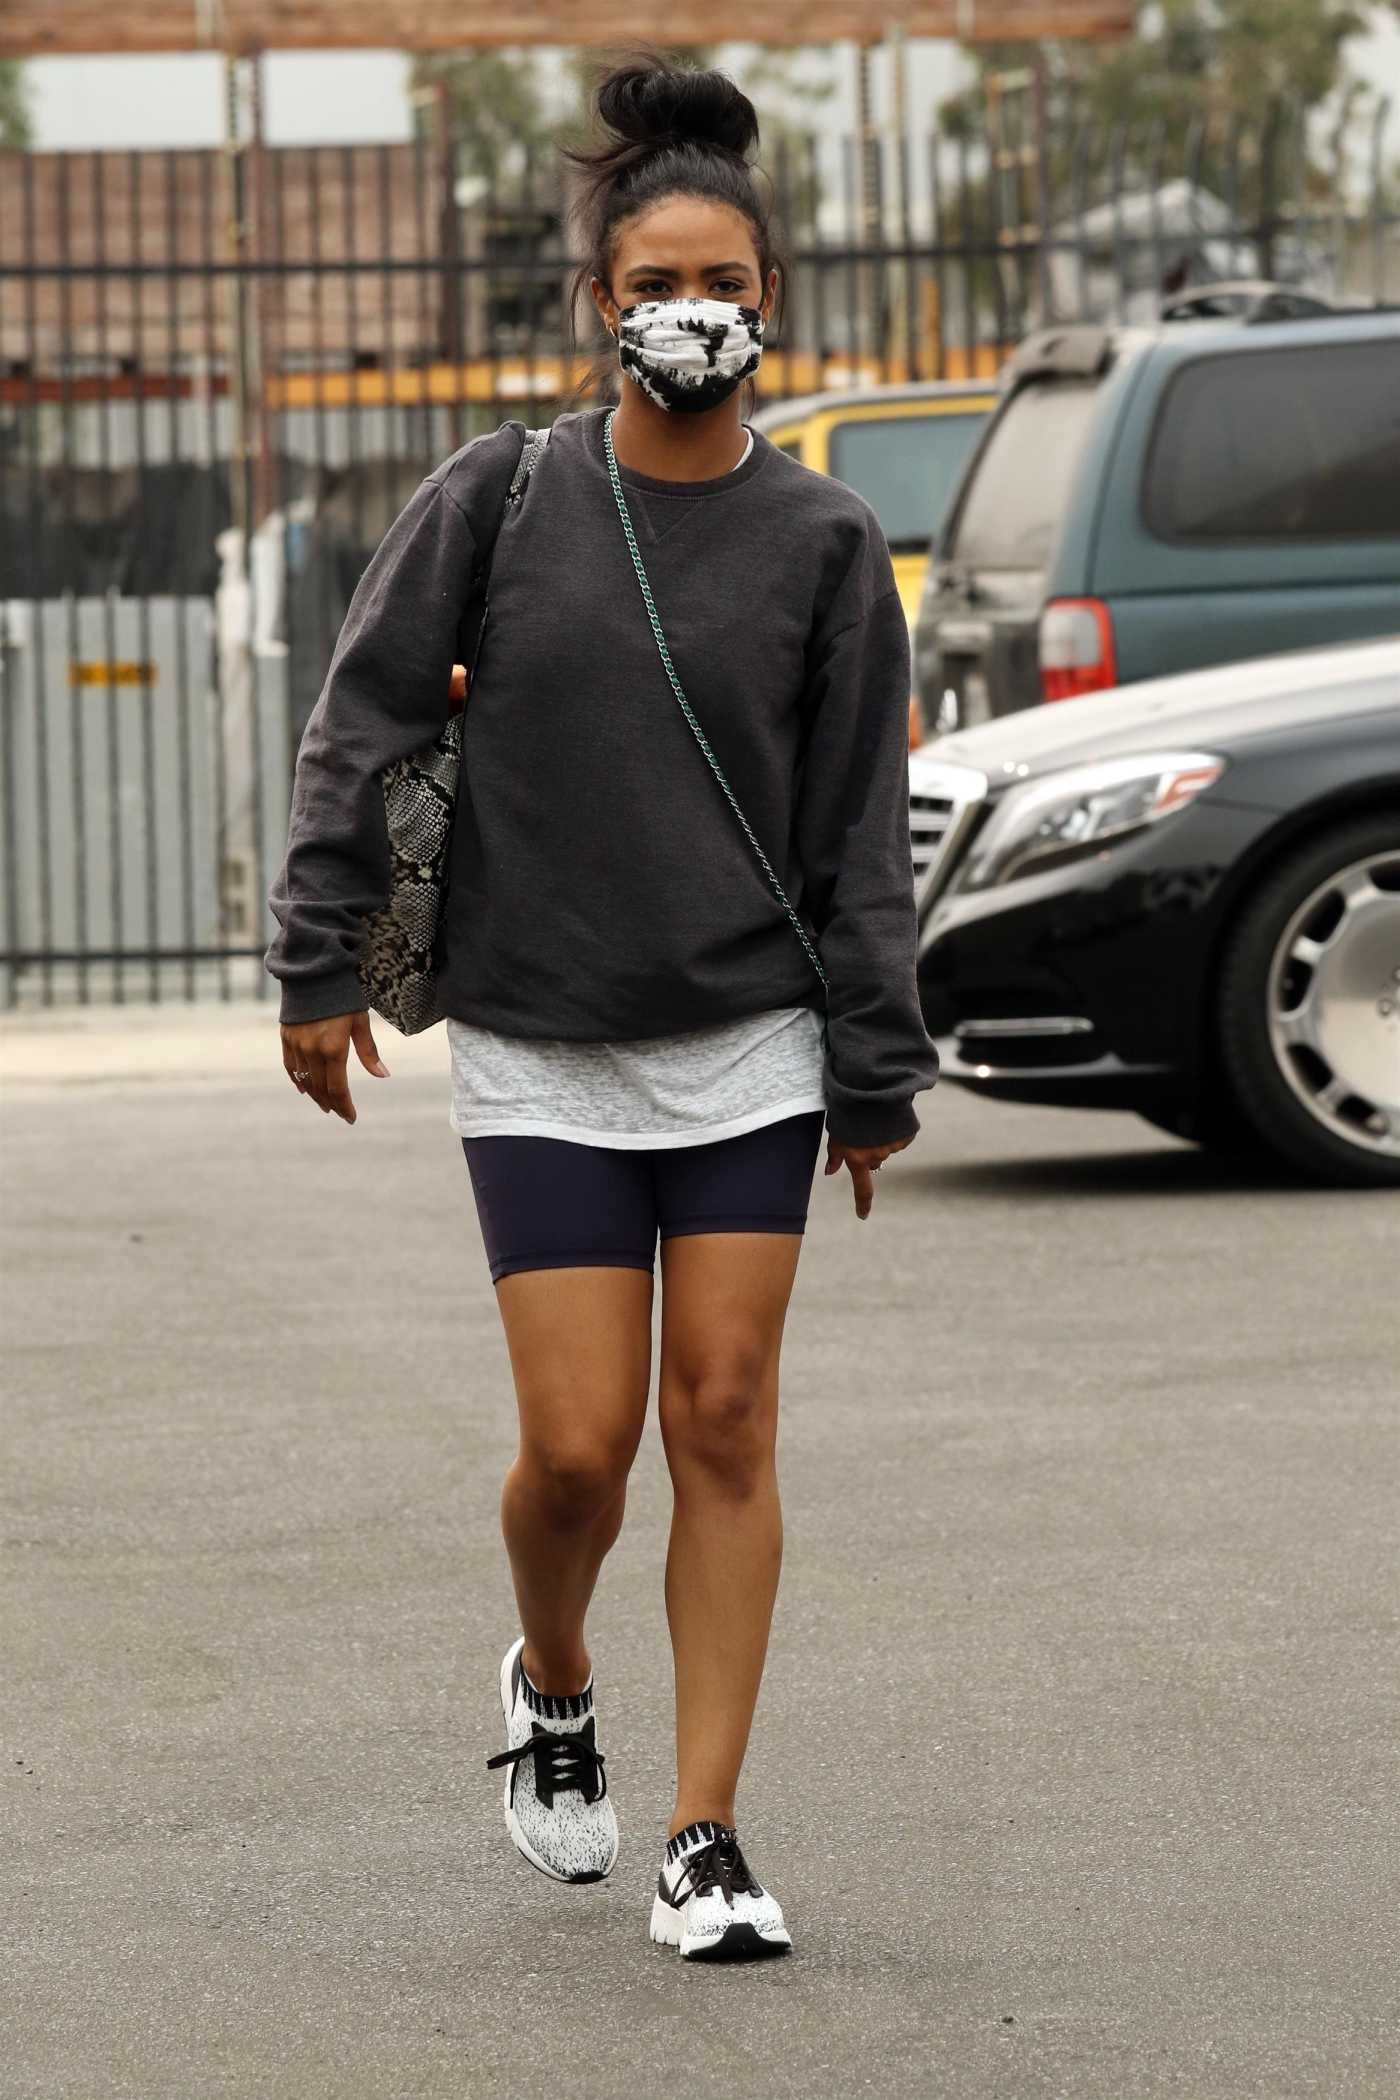 Britt Stewart in a Protective Mask Arrives at the DWTS Studio in Los Angeles 09/12/2020